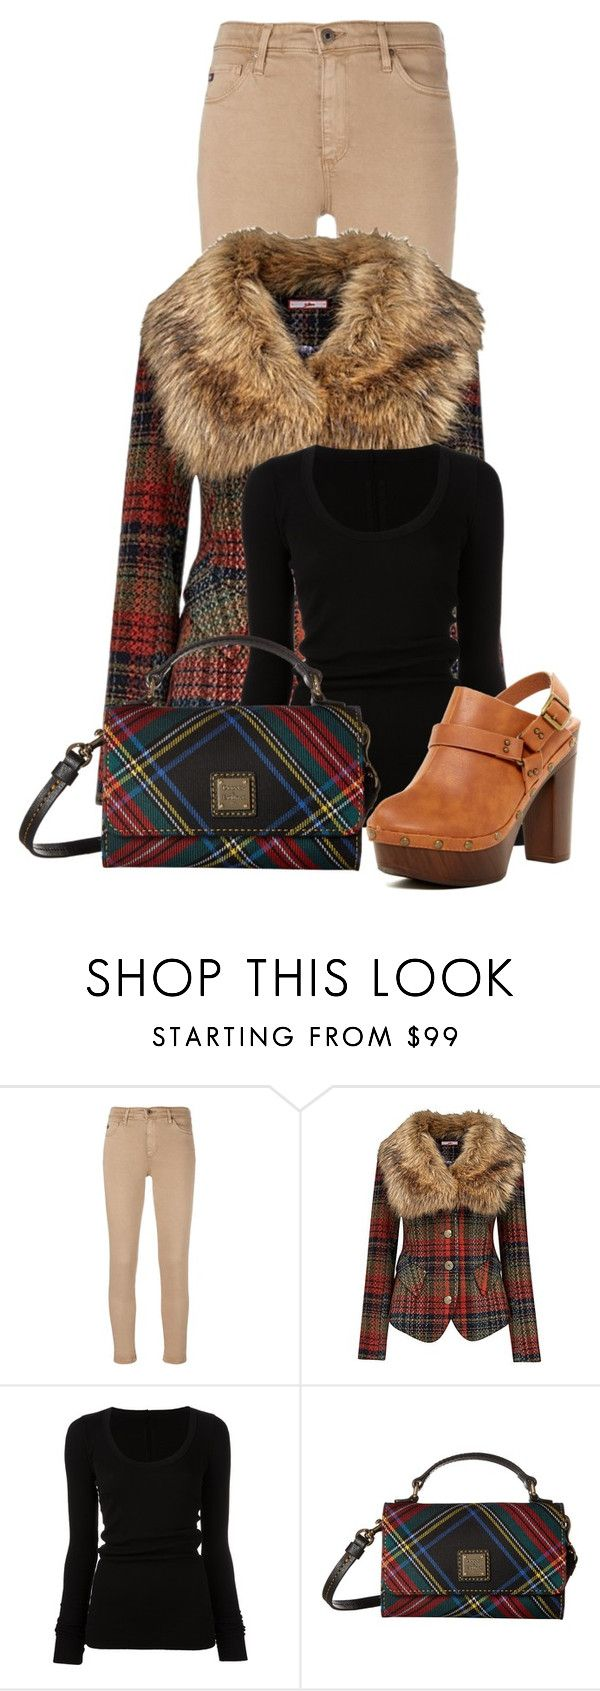 """""""Untitled #21415"""" by nanette-253 ❤ liked on Polyvore featuring AG Adriano Goldschmied, Joe Browns, DRKSHDW, Dooney & Bourke and Nature Breeze"""